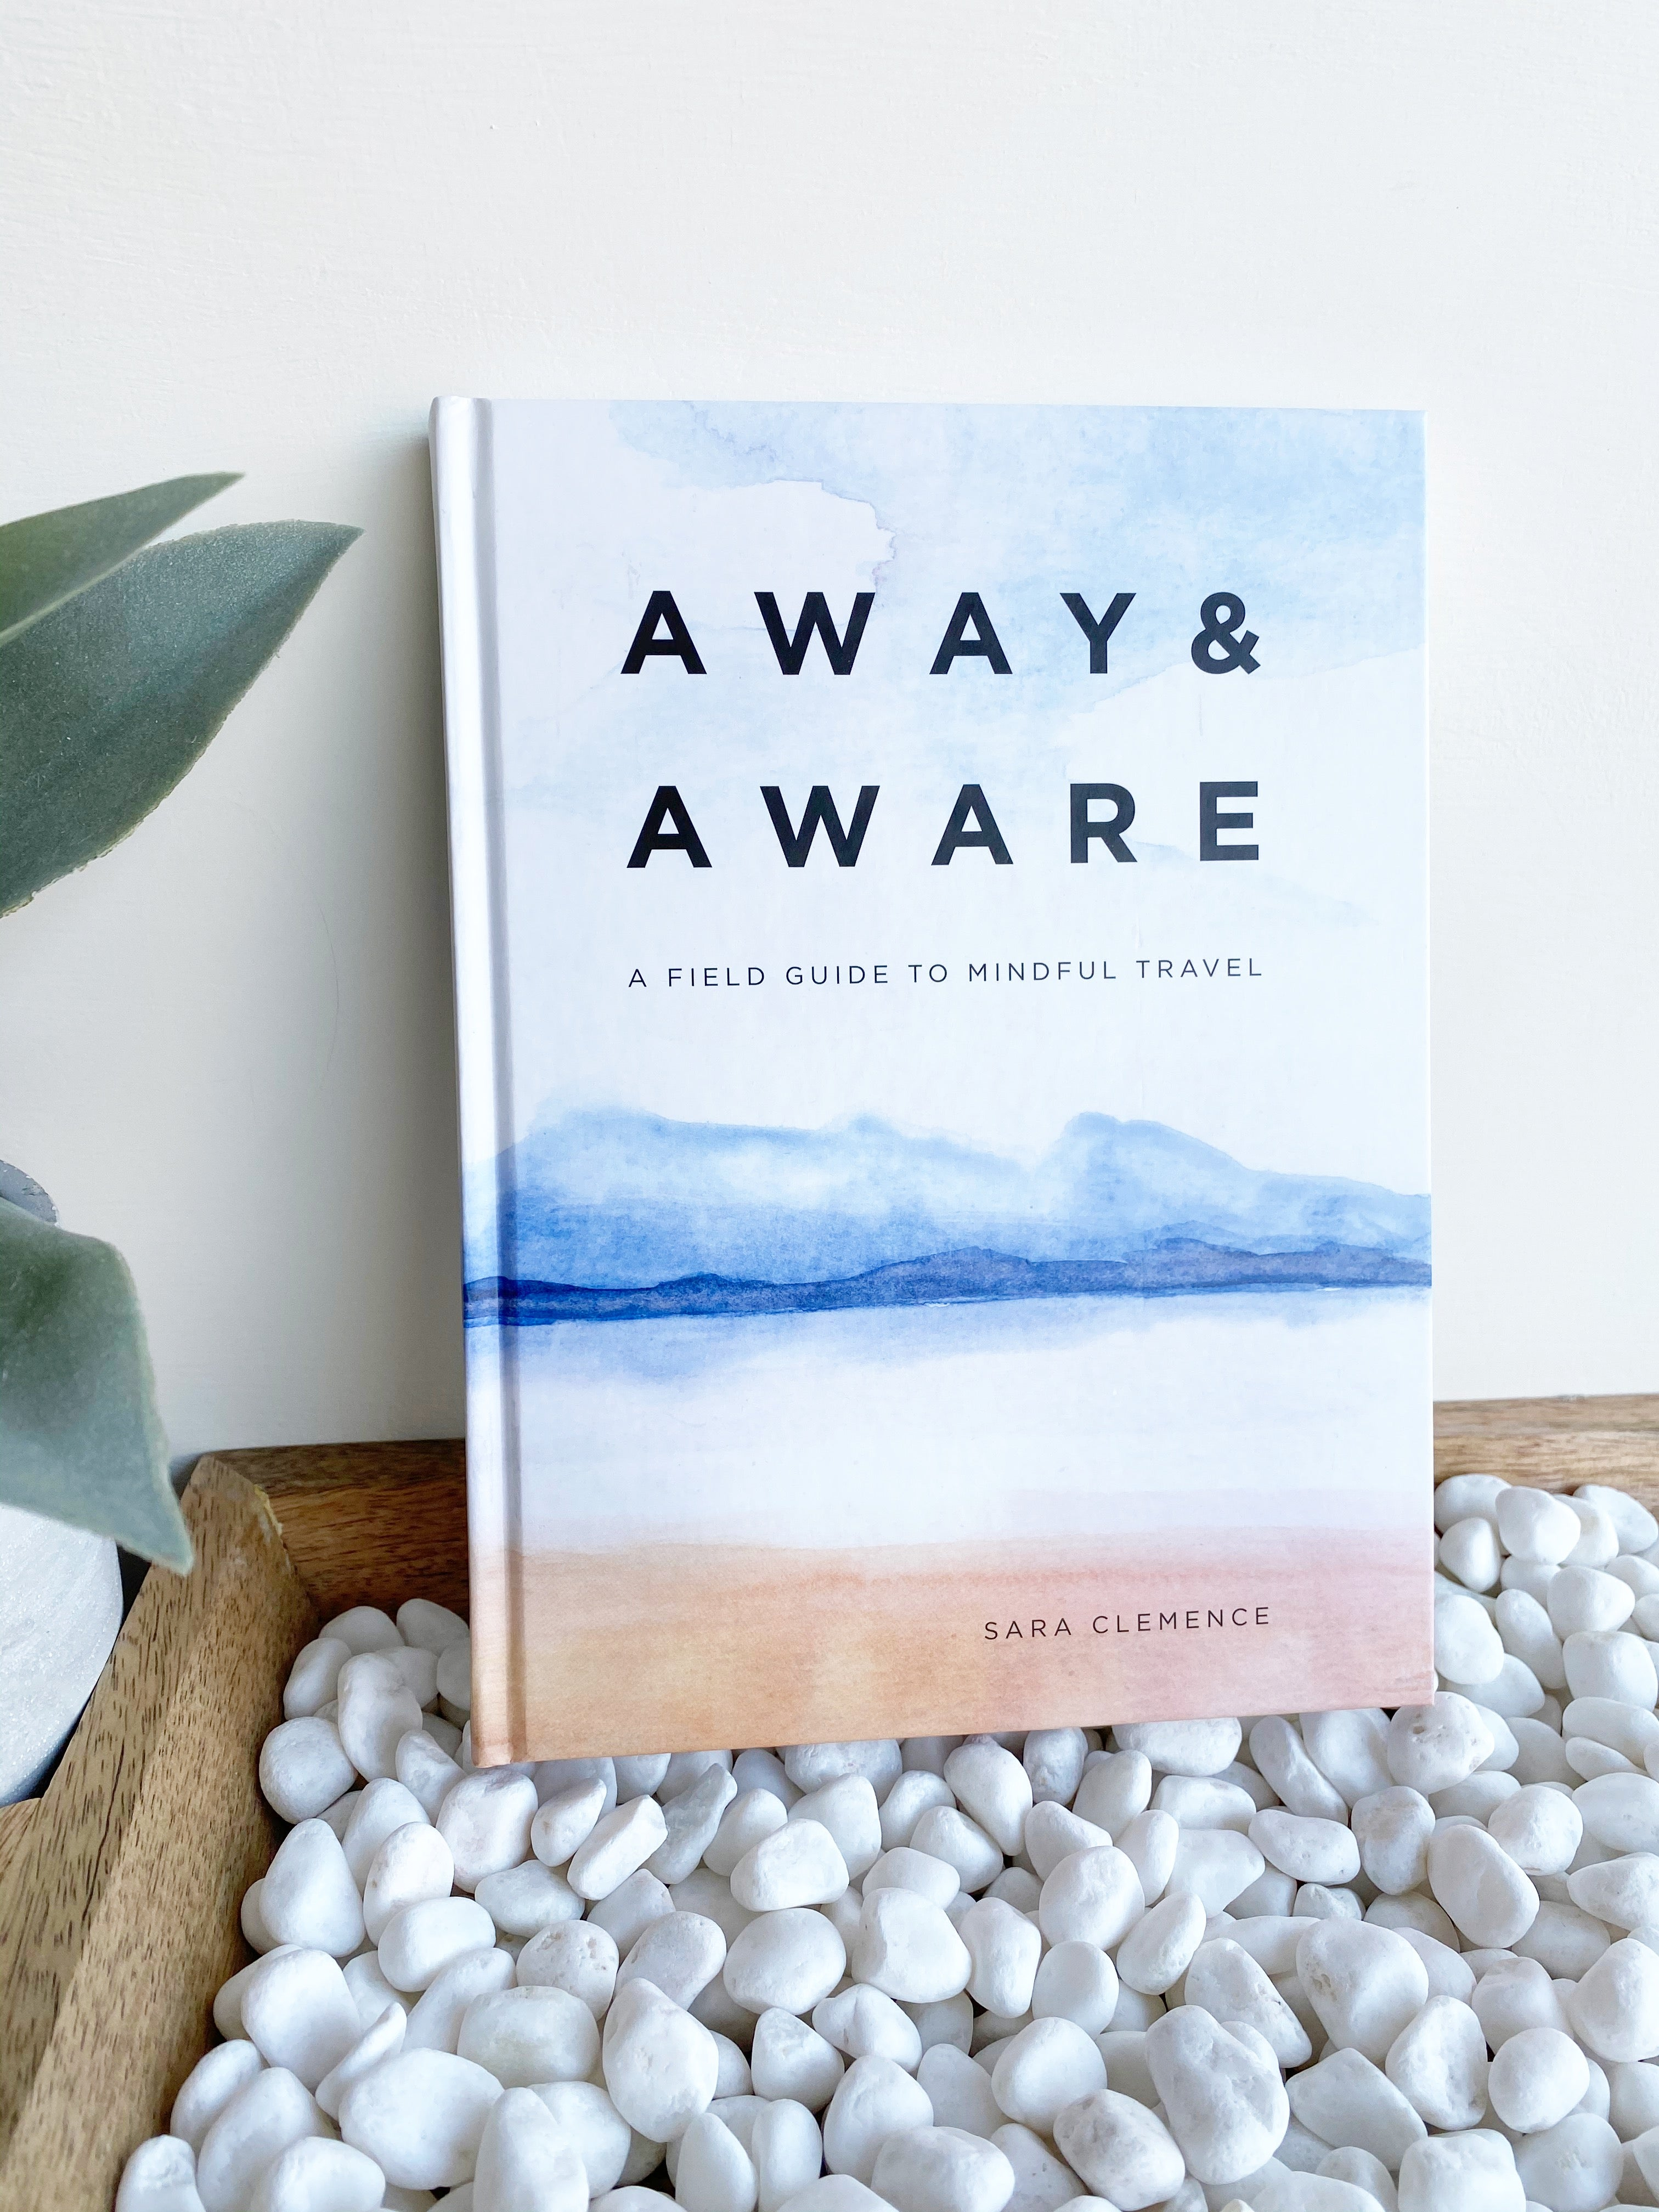 The hardcover book sits upright against a white wall, sitting atop a wooden tray filled with white pebbles. There is a green plant peeking over the left side. The book cover features an abstract scene that resembles blue skies, dark blue water, and sandy beach. In bold black text, the title Away & Aware is printed with description and author text below.